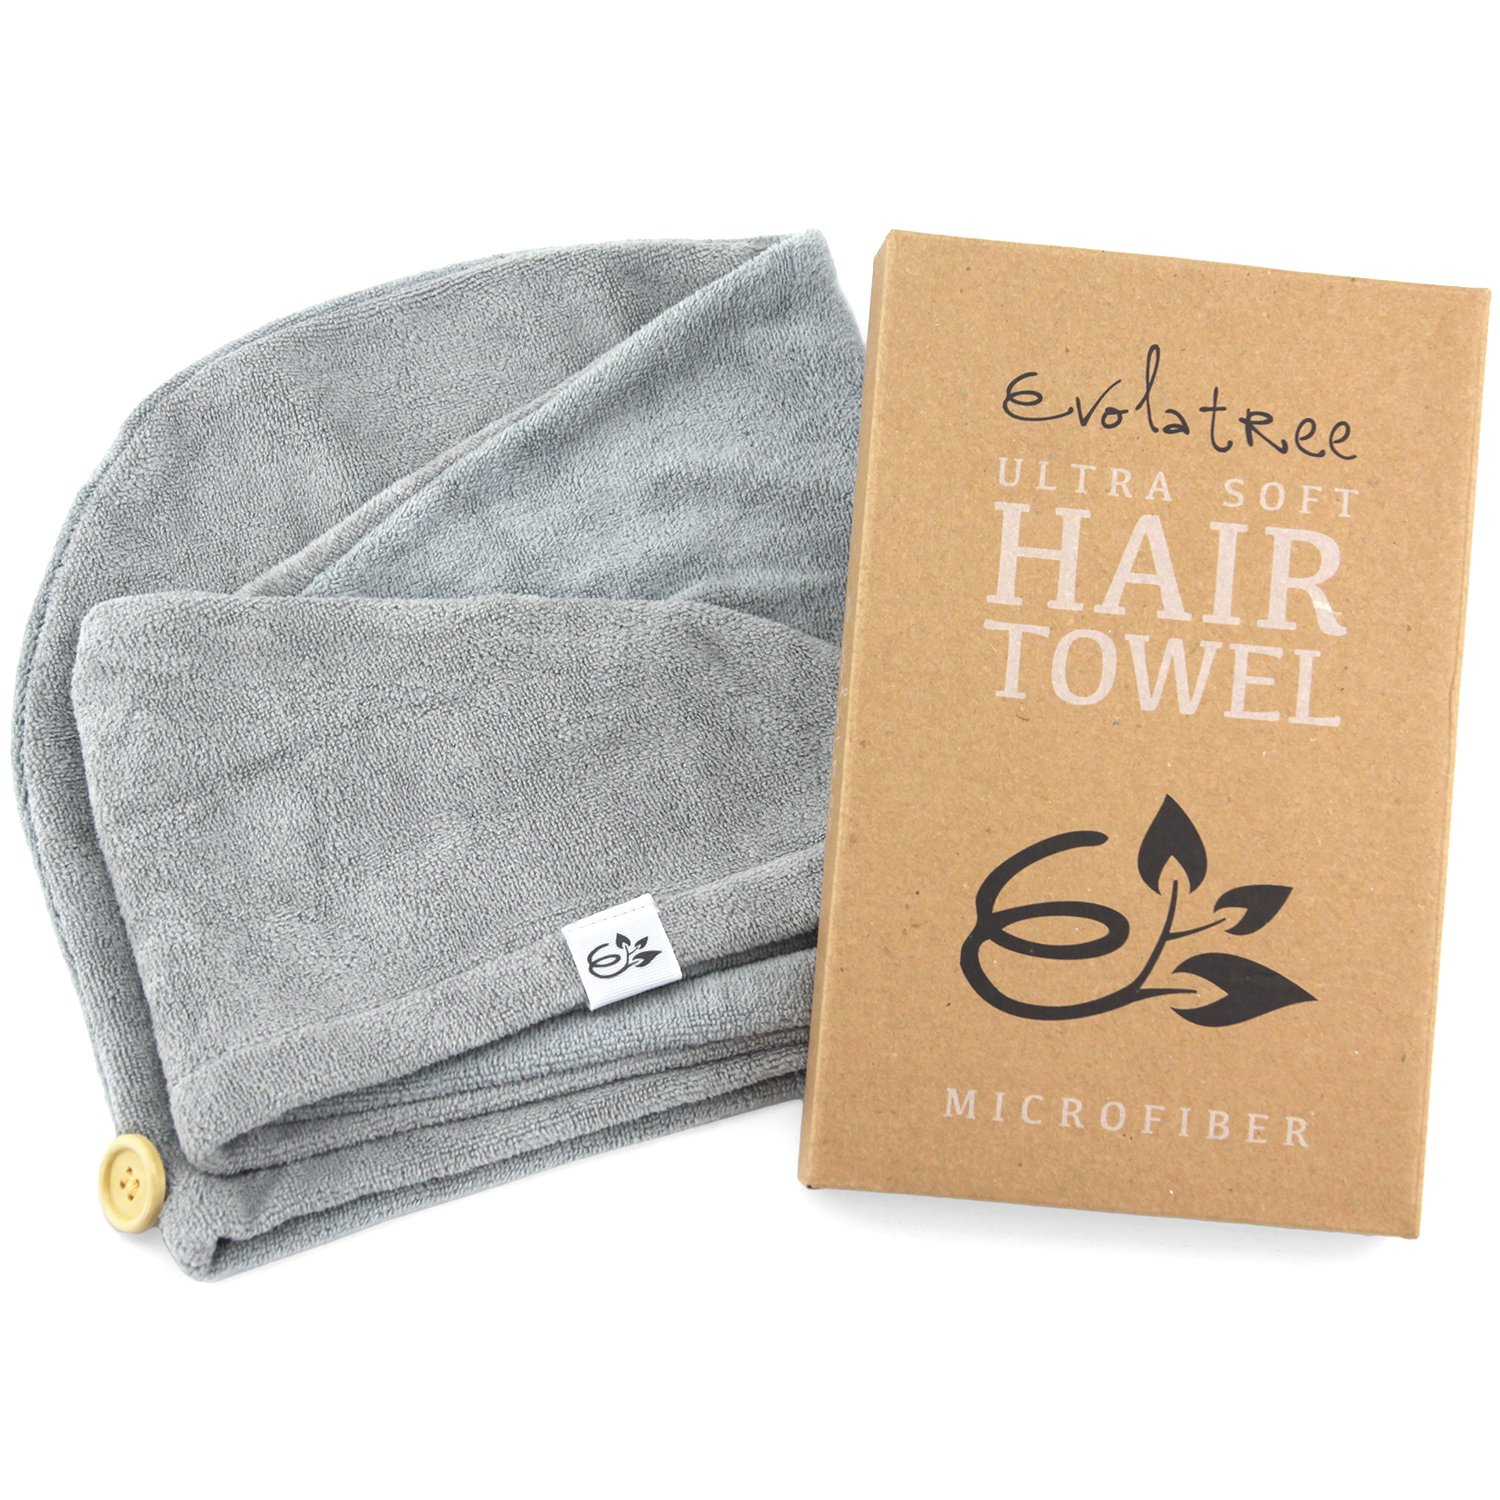 Evolatree Microfiber Hair Towel Wrap - Quick Magic Hair Dry Hat - Anti Frizz Products For Curly Hair Drying Towels - Neutral Gray by Evolatree